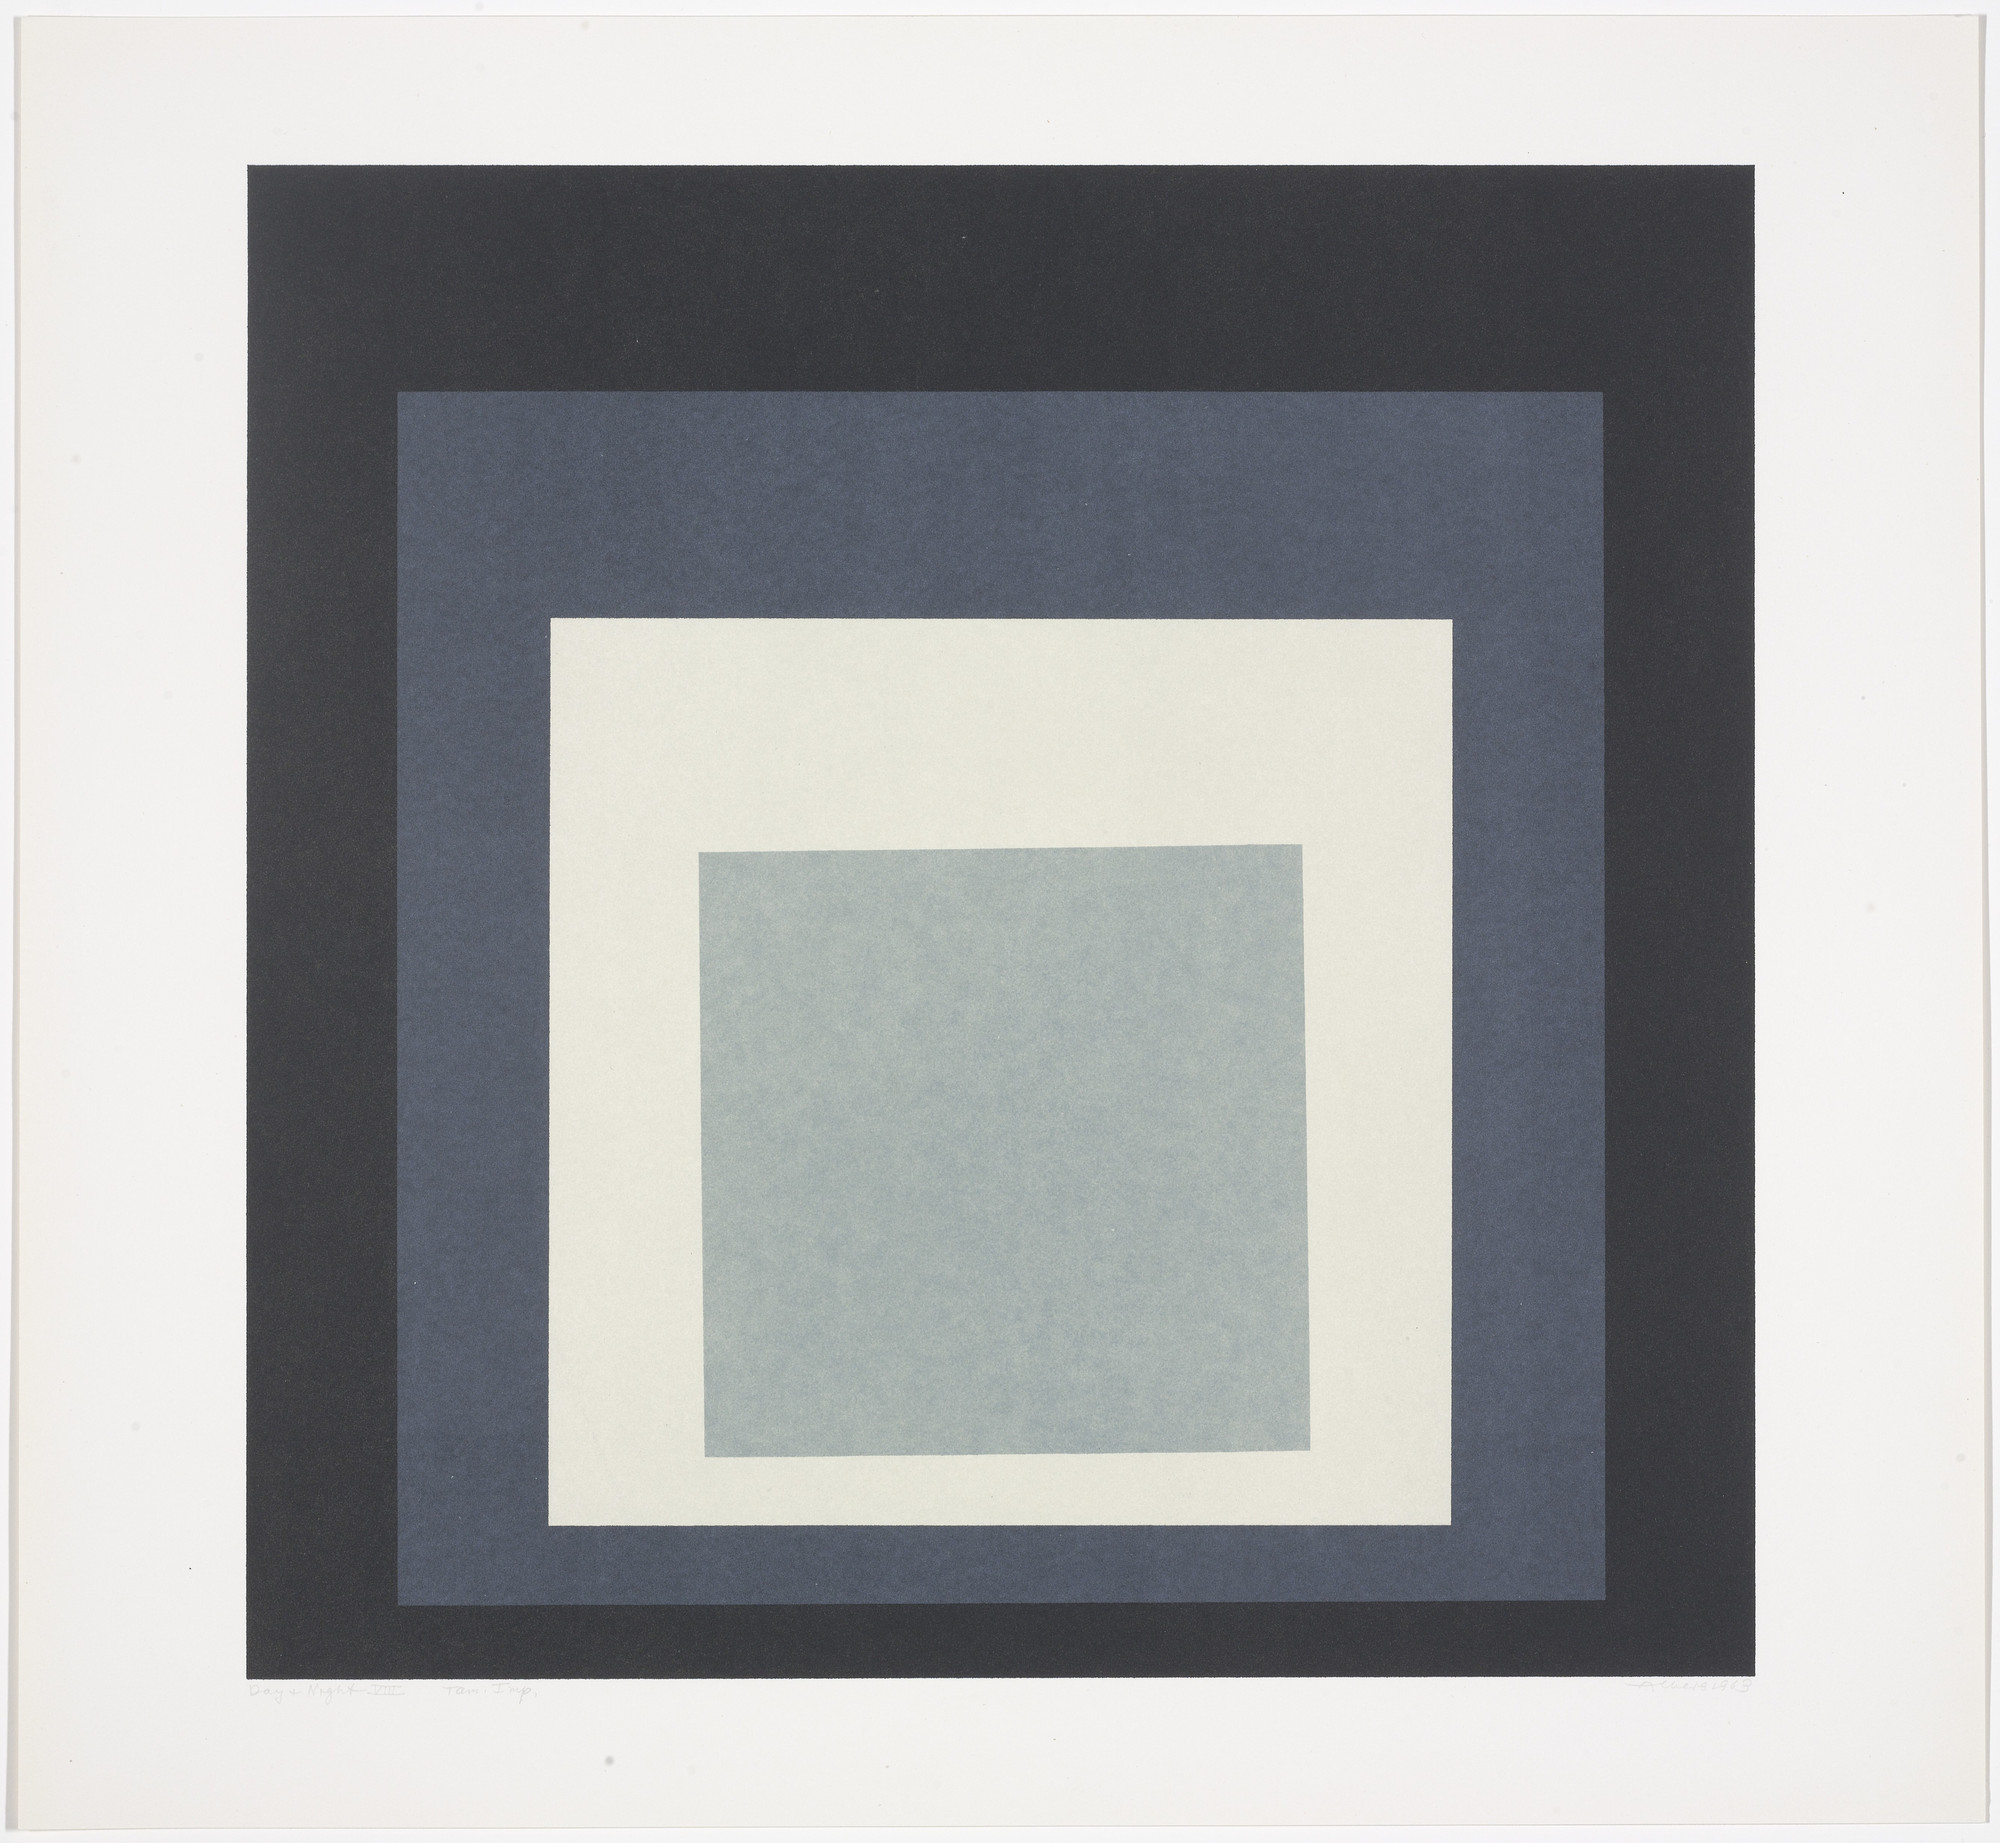 Josef Albers. Day + Night VIII from Day and Night: Homage to the Square. 1963